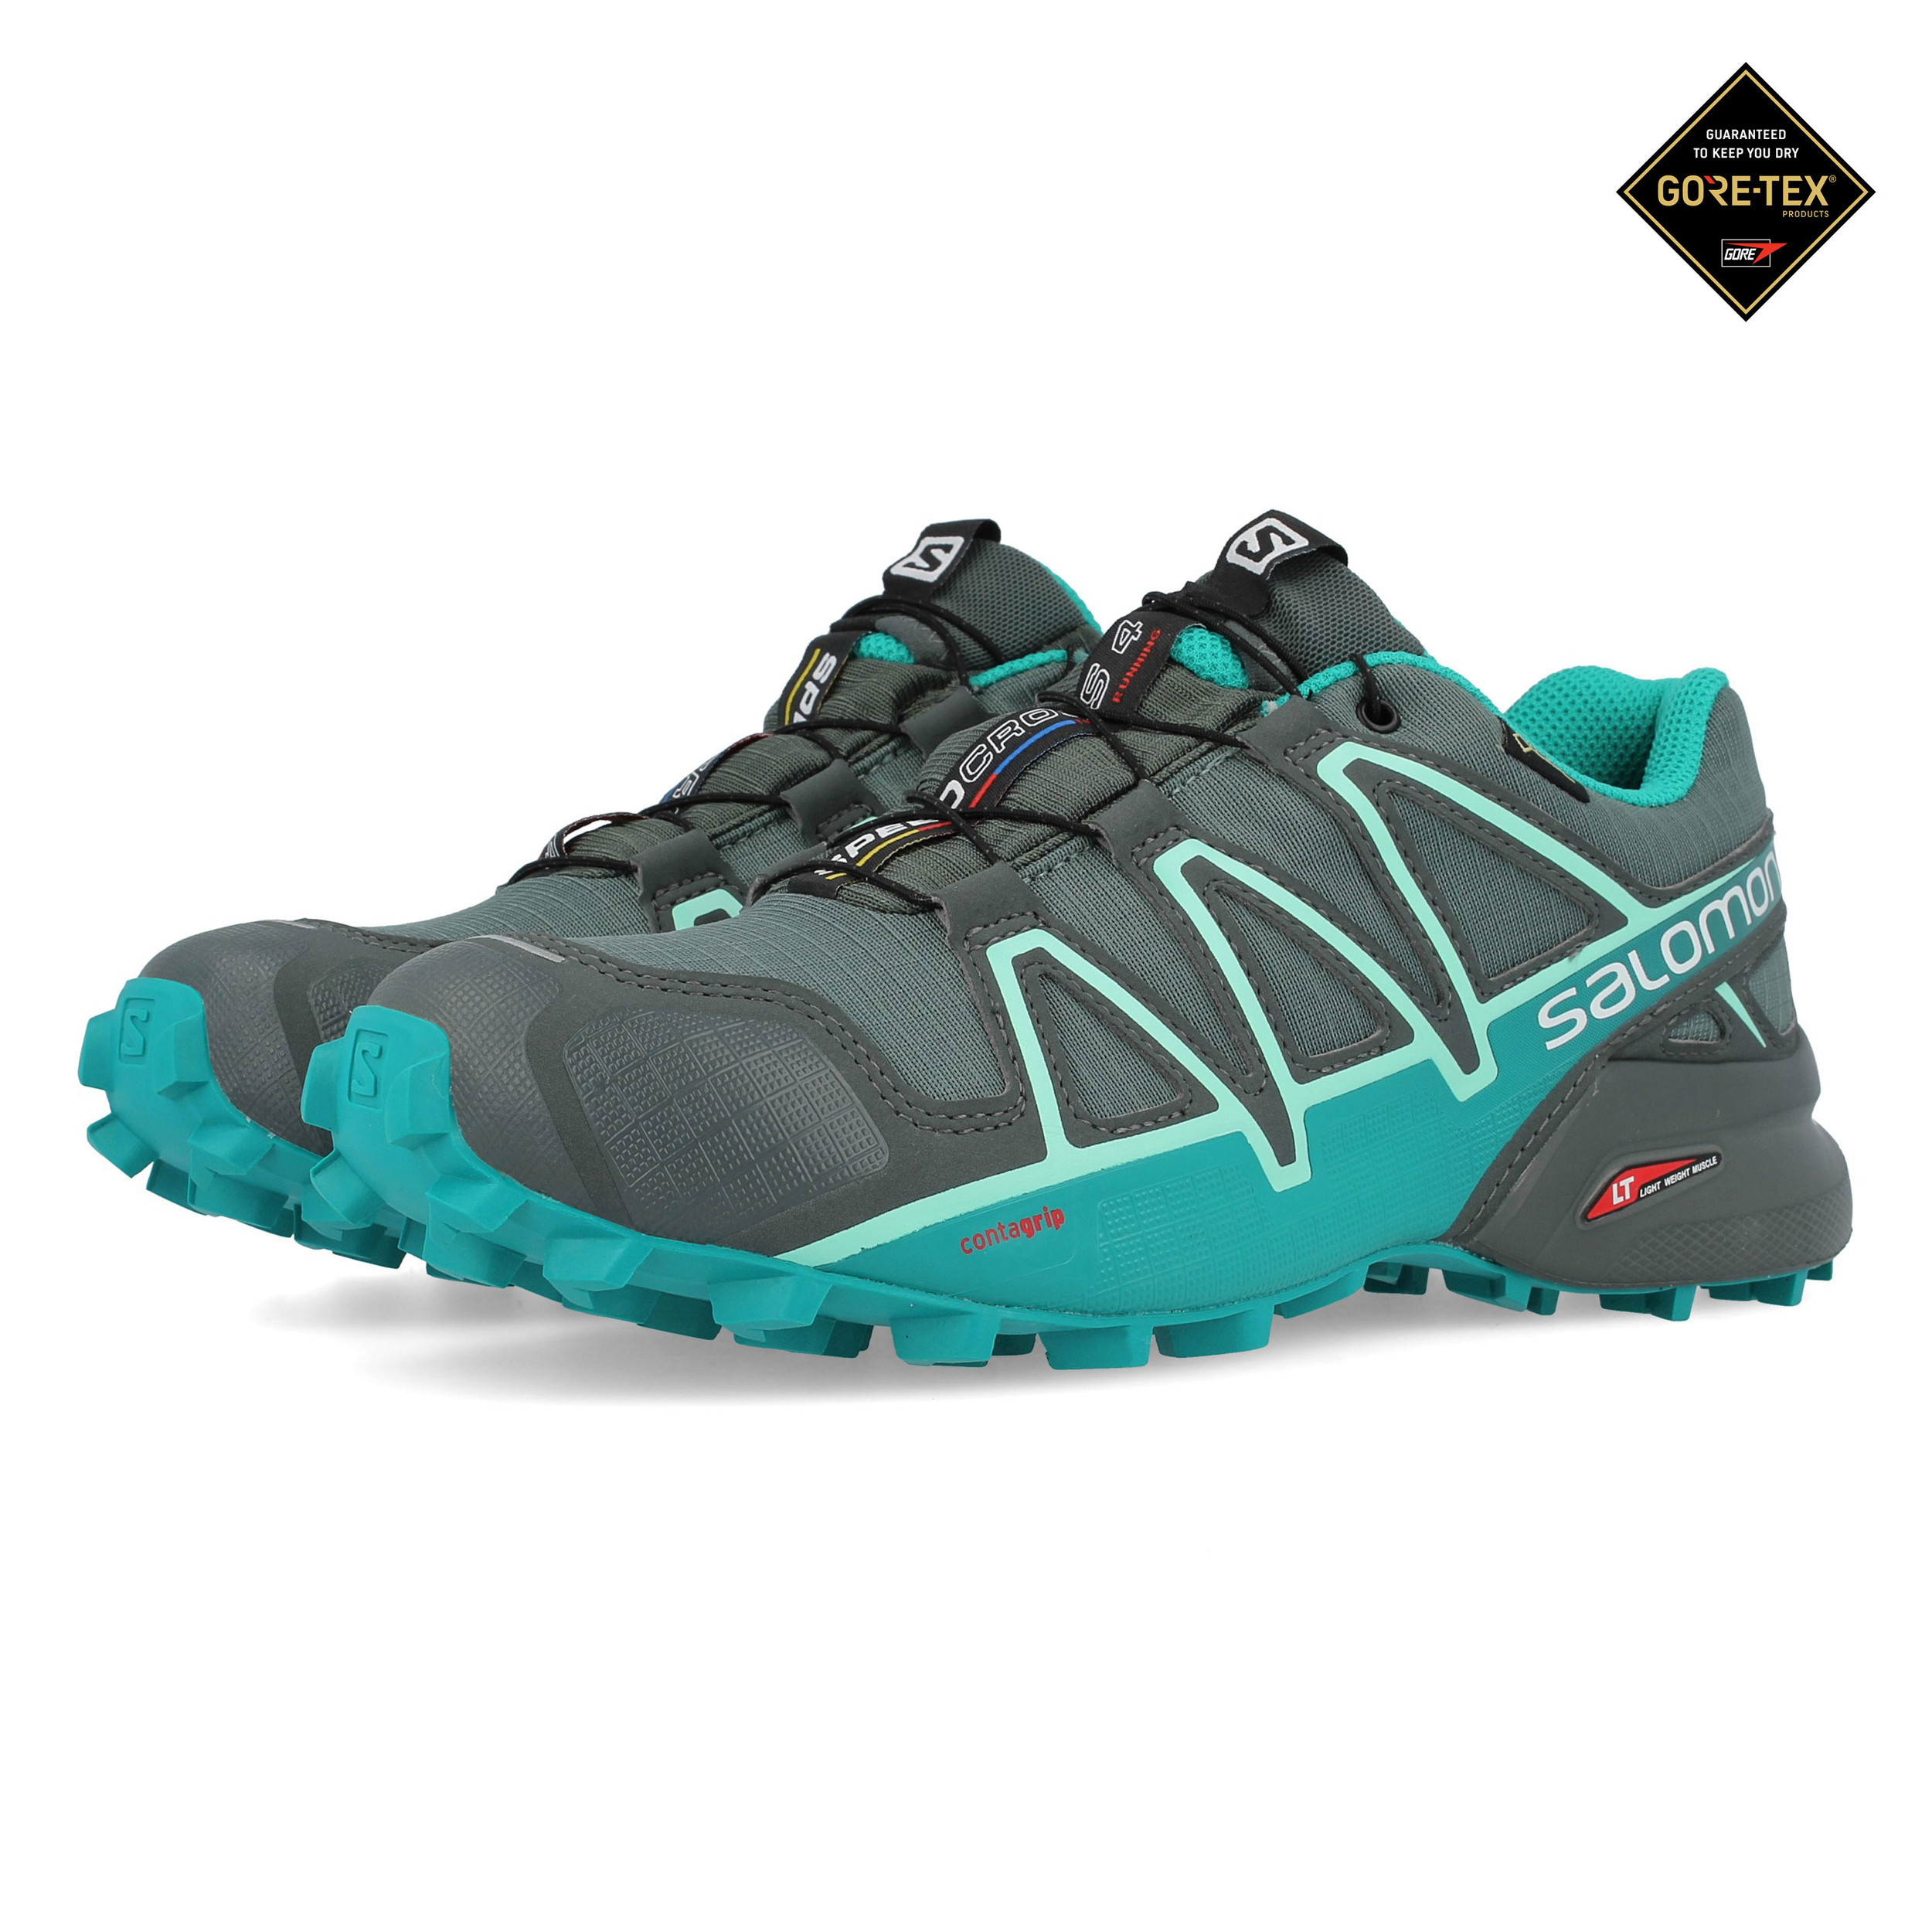 baskets pour pas cher c5a1c 0f839 Details about Salomon Womens Speedcross 4 GORE-TEX Trail Running Shoes  Trainers Sneakers Grey